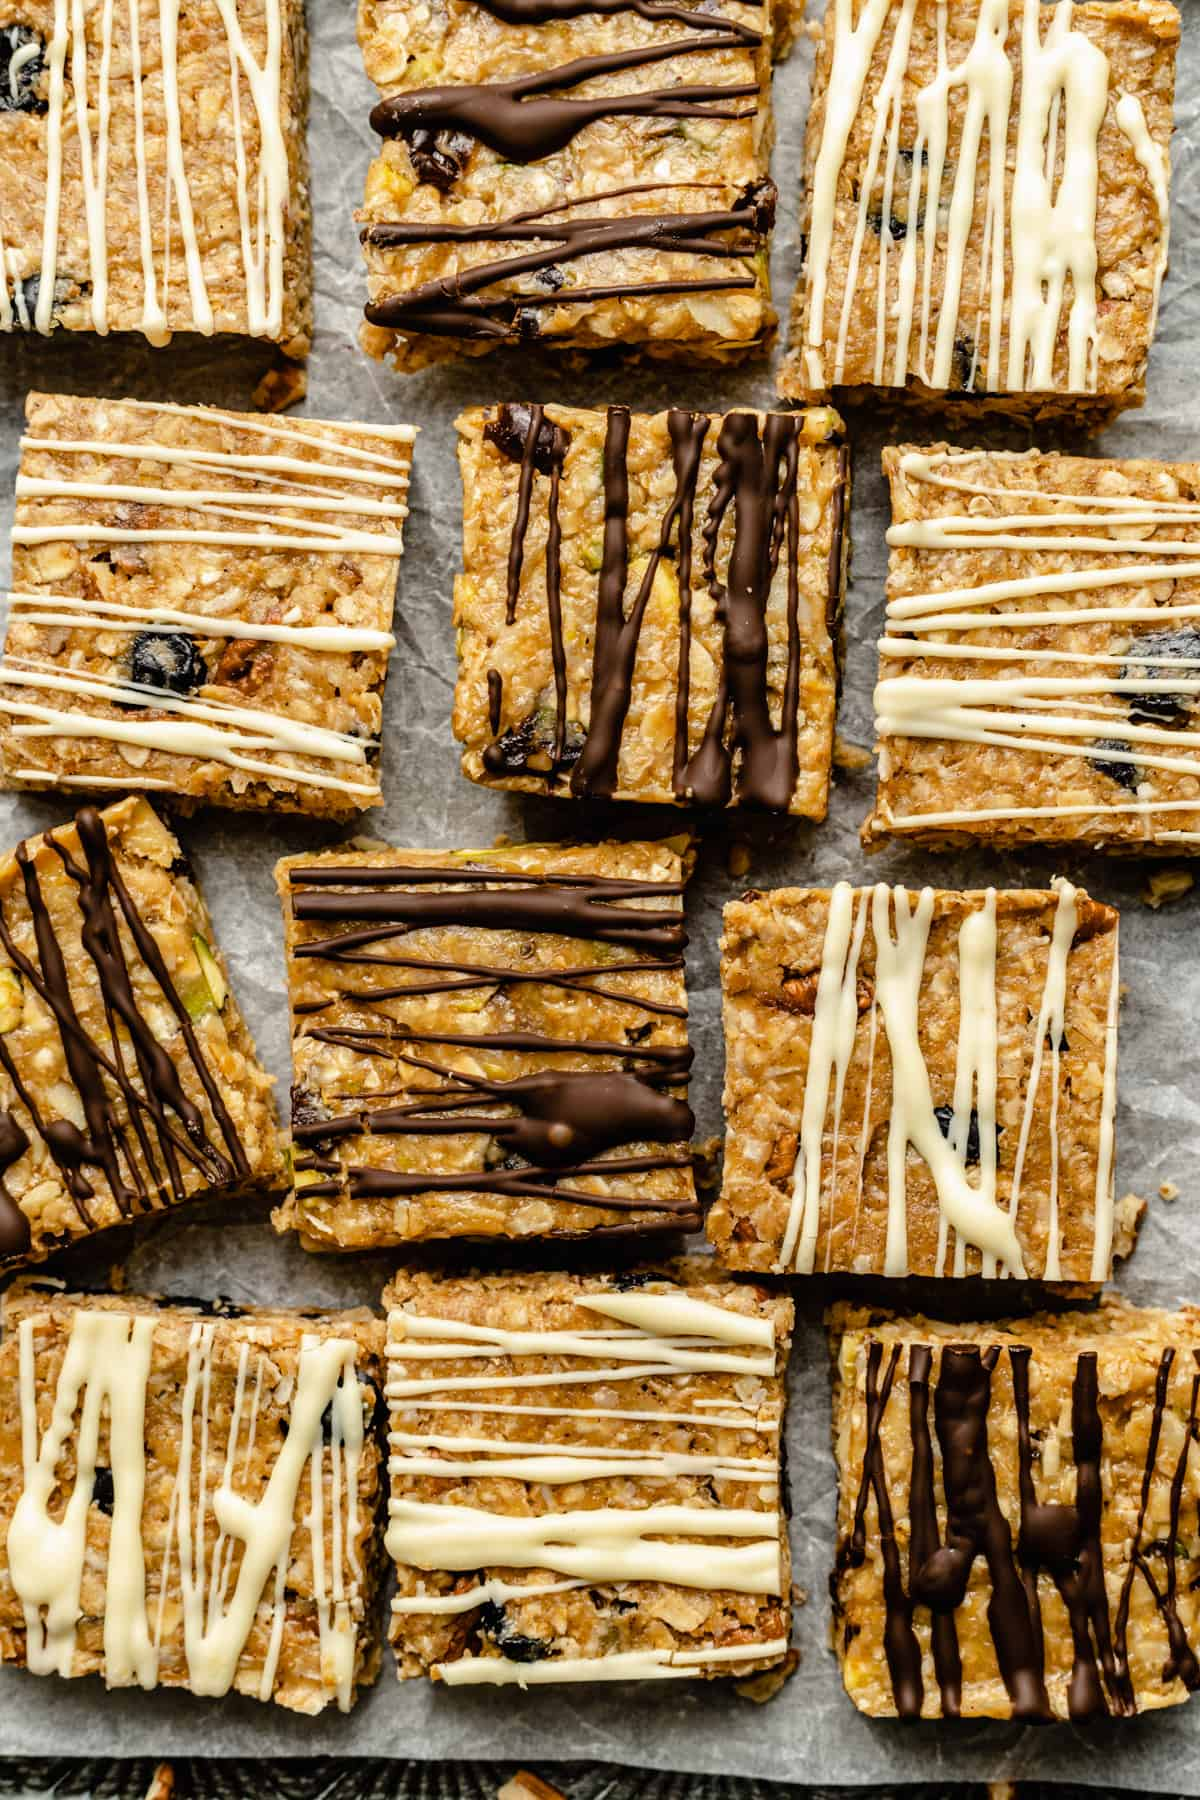 a granola bar with a bite taken out stacked on top of another bar, with more granola bars in the background